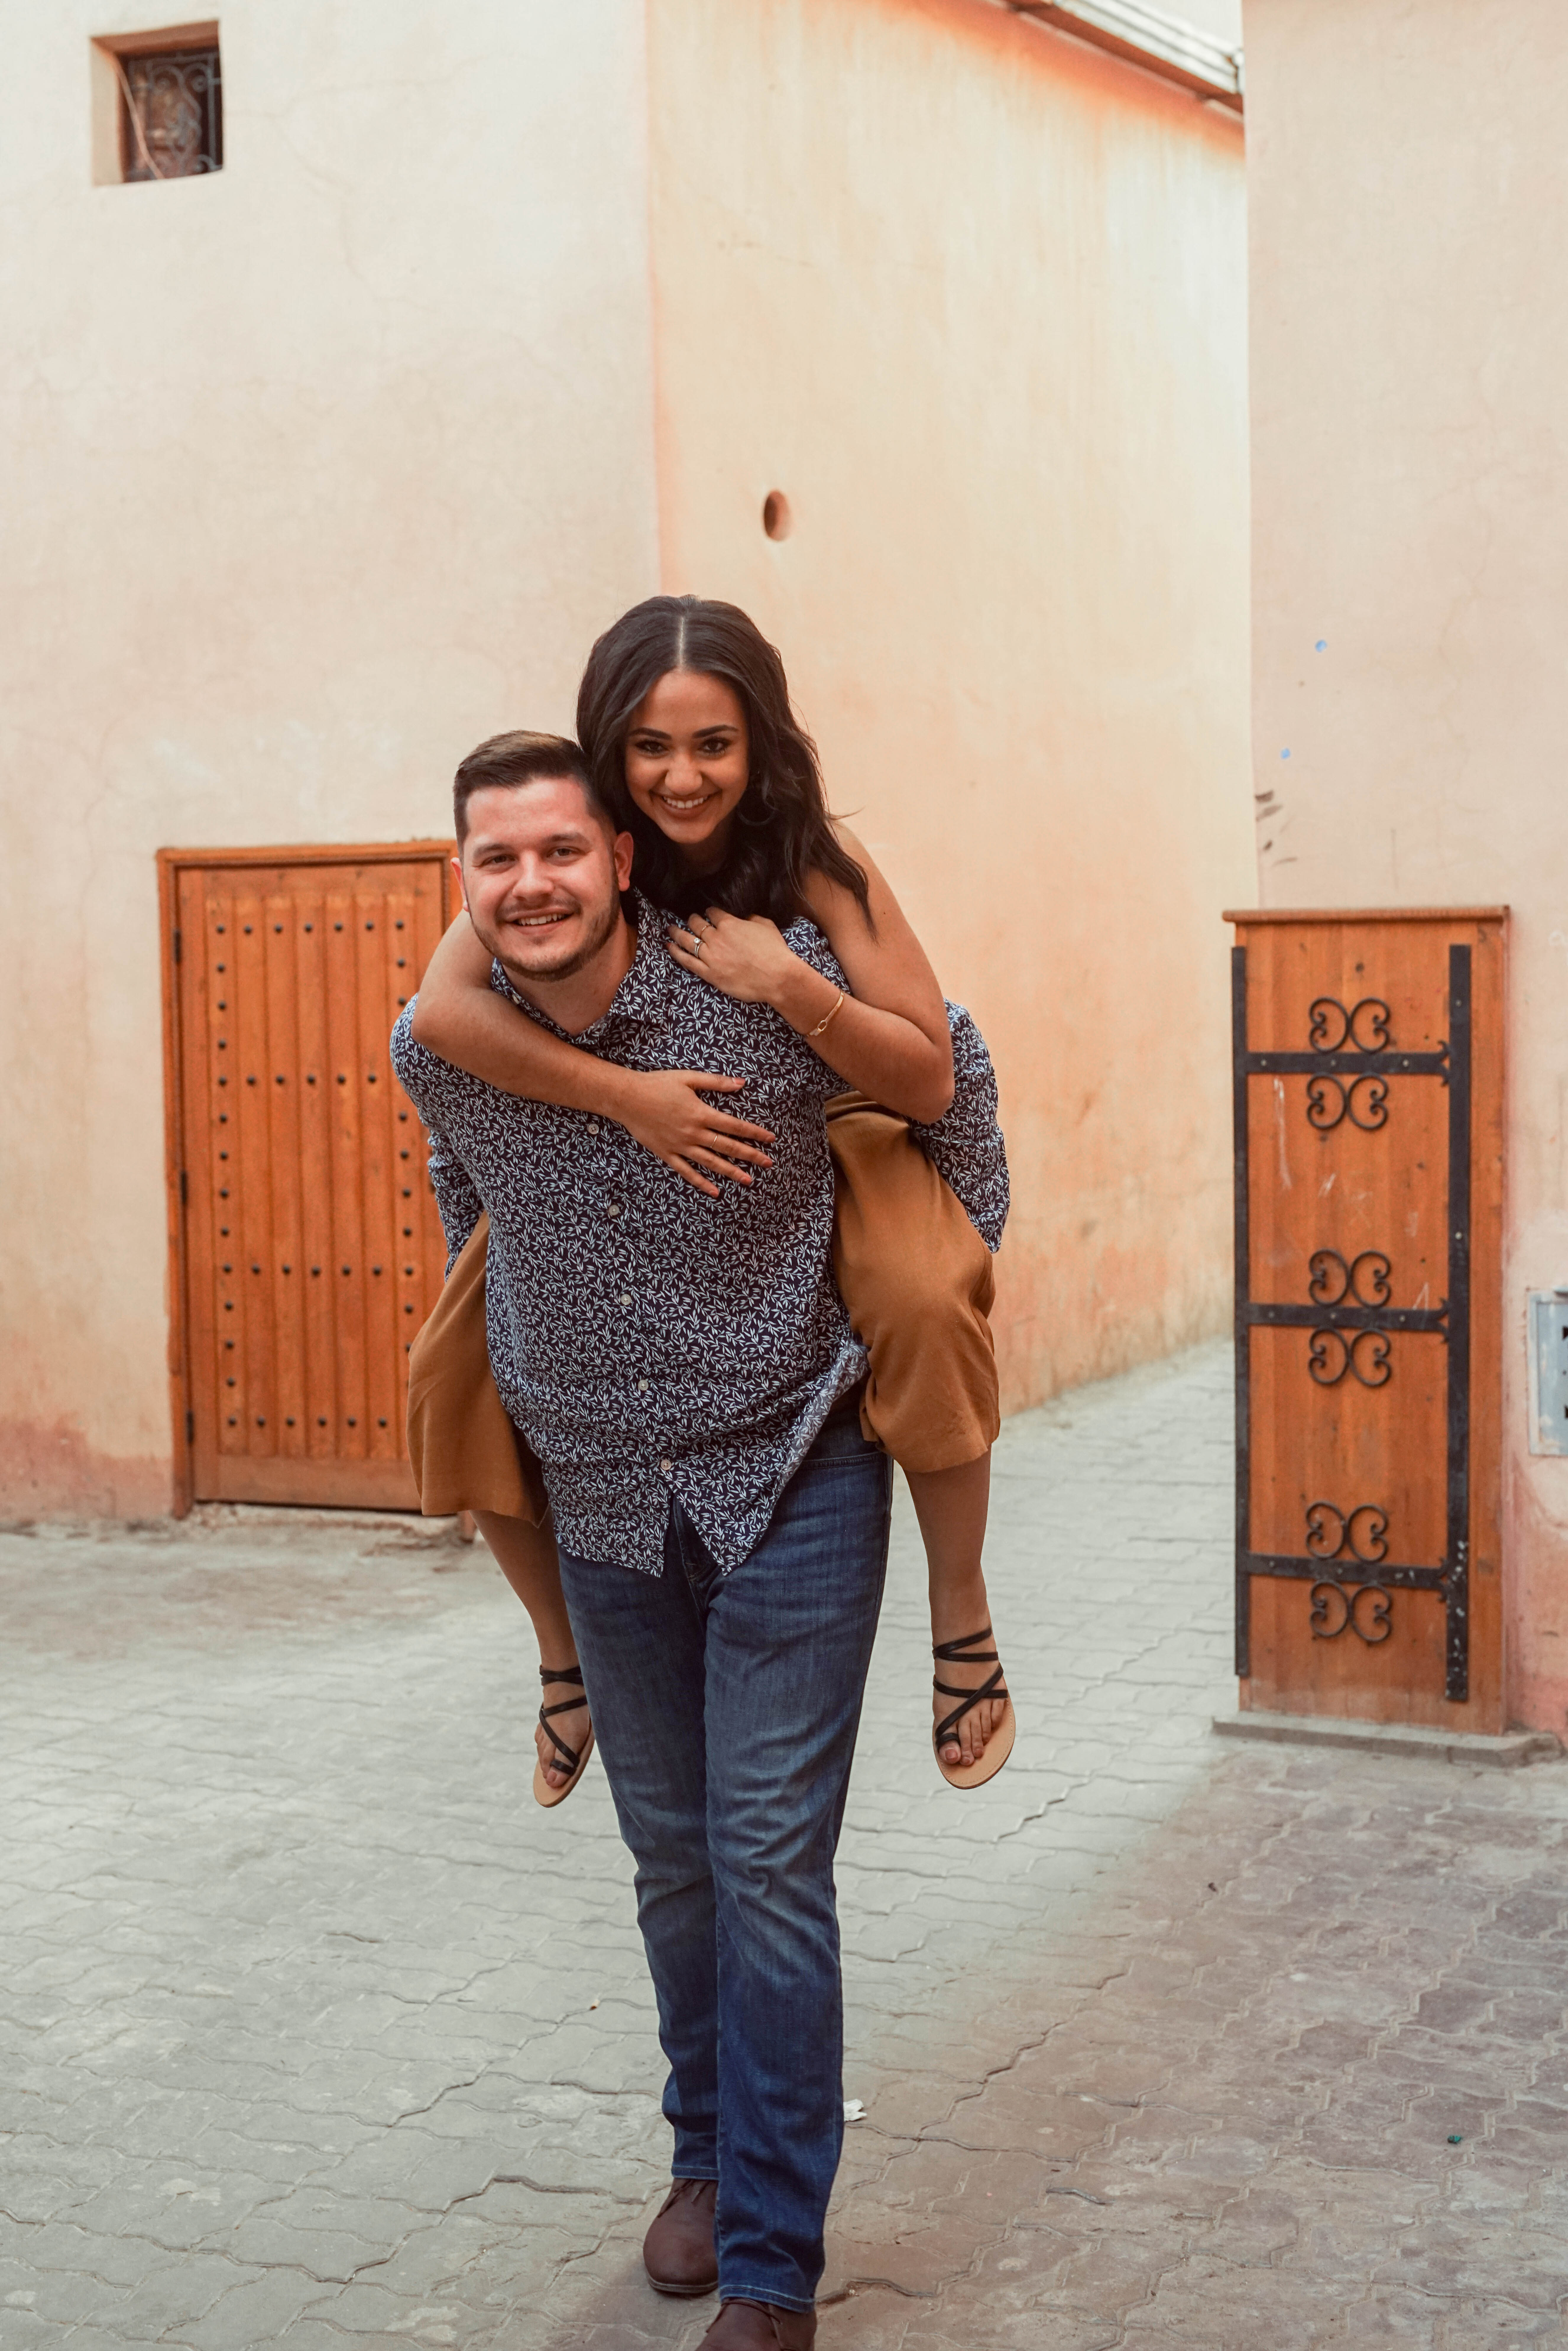 Our Couples Shoot in Marrakech, Morocco